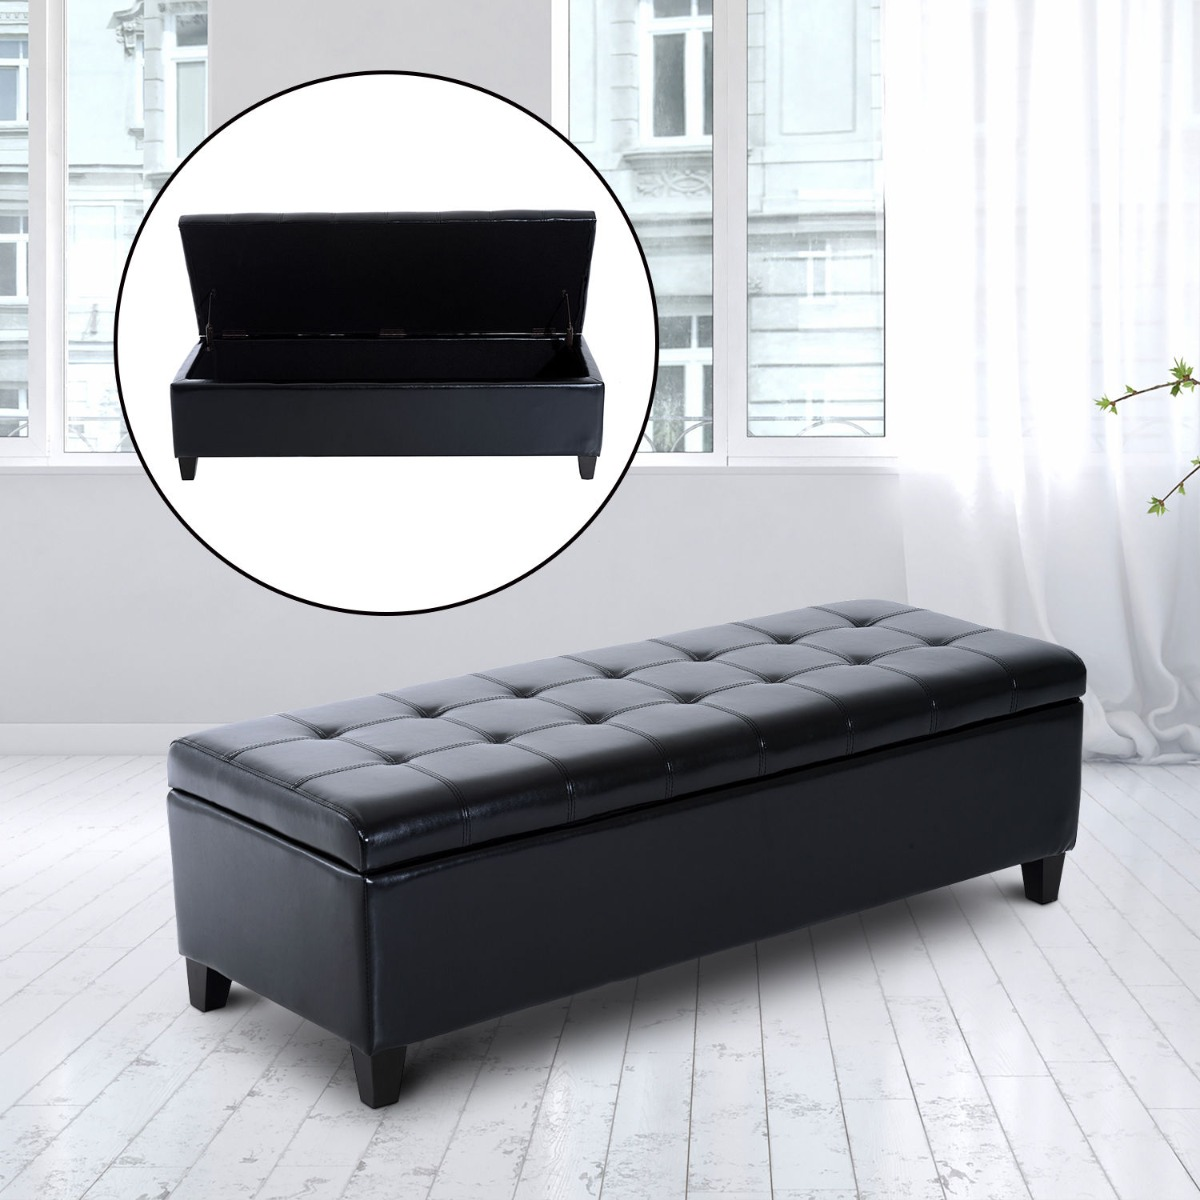 Homcom 51 Pu Leather Tufted Modern Storage Ottoman Bench Black Large 51 Faux Leather Storage Ottoman Ottomans Aosom